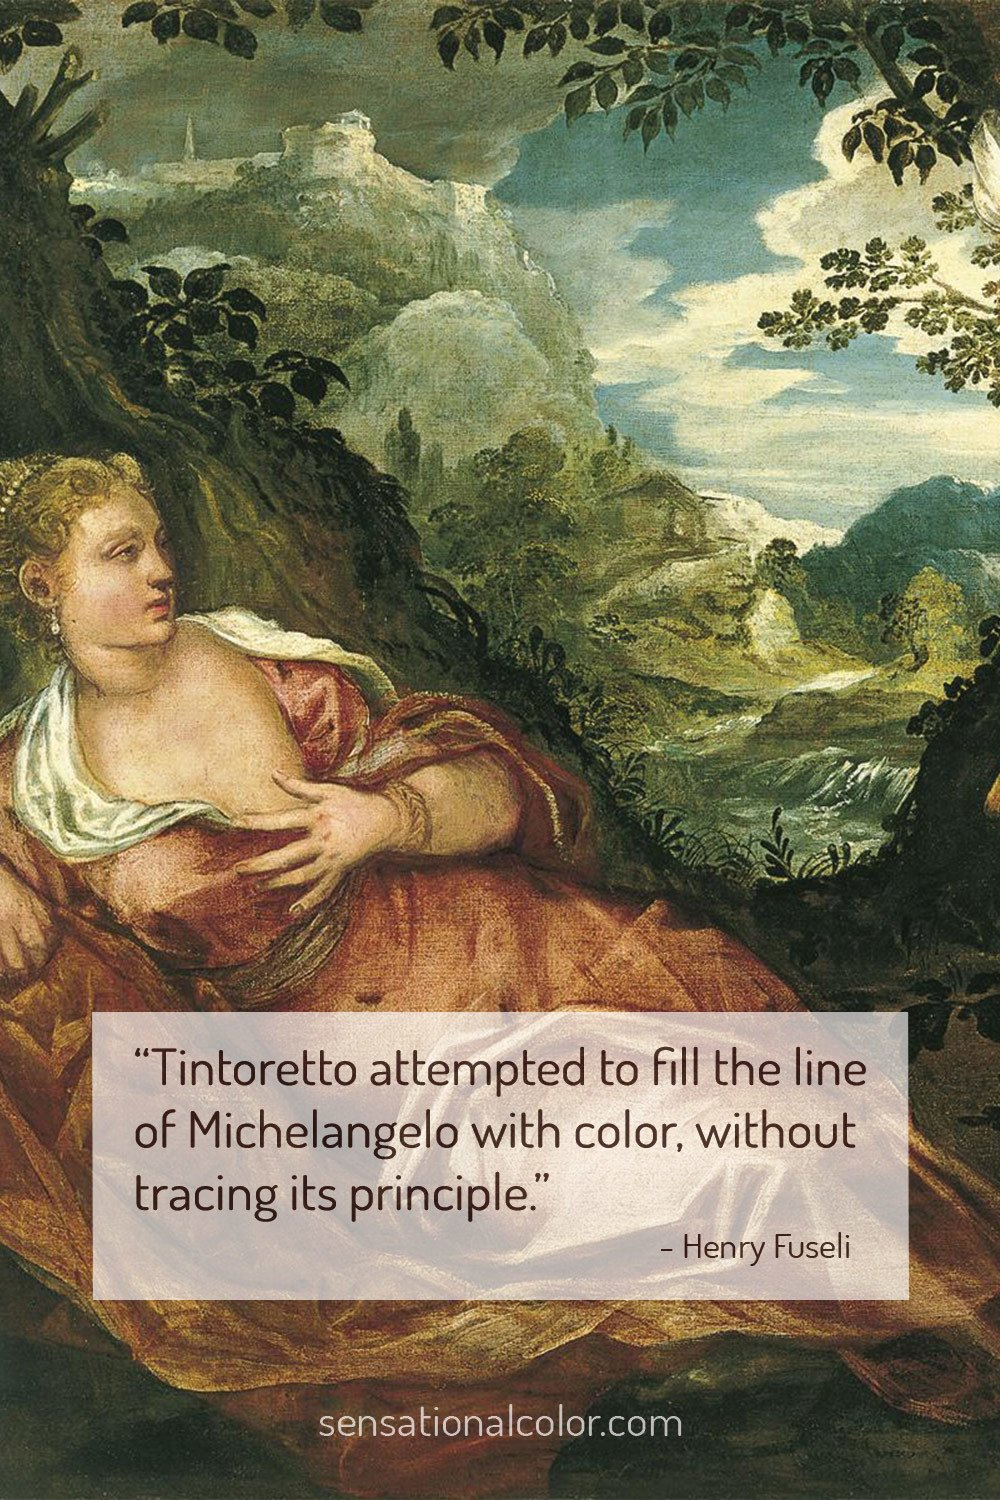 """Tintoretto attempted to fill the line of Michelangelo with color, without tracing its principle."" - Henry Fuseli"